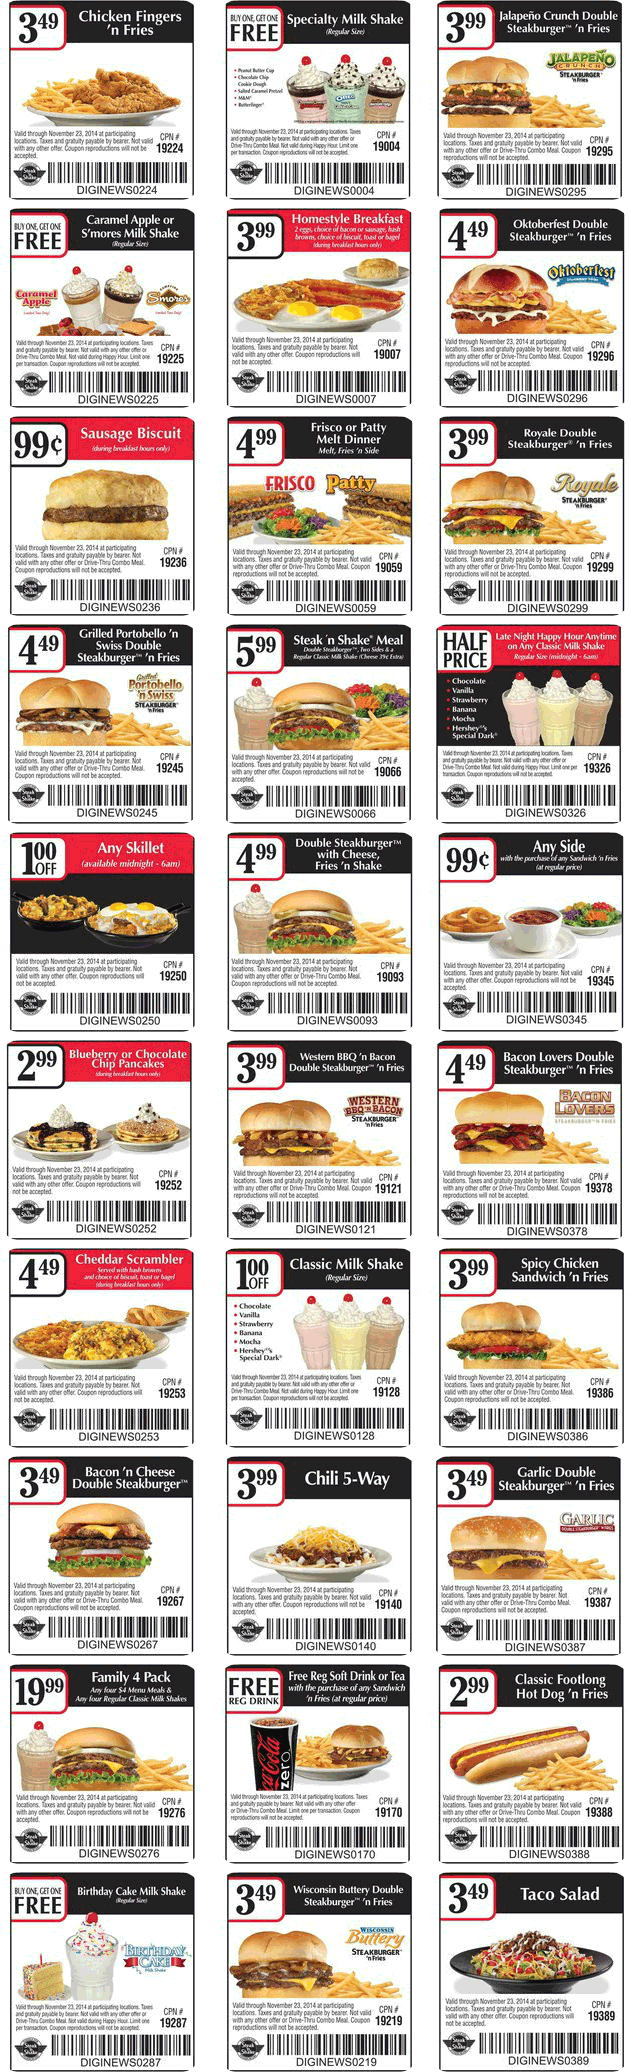 Steak and shake mobile coupons